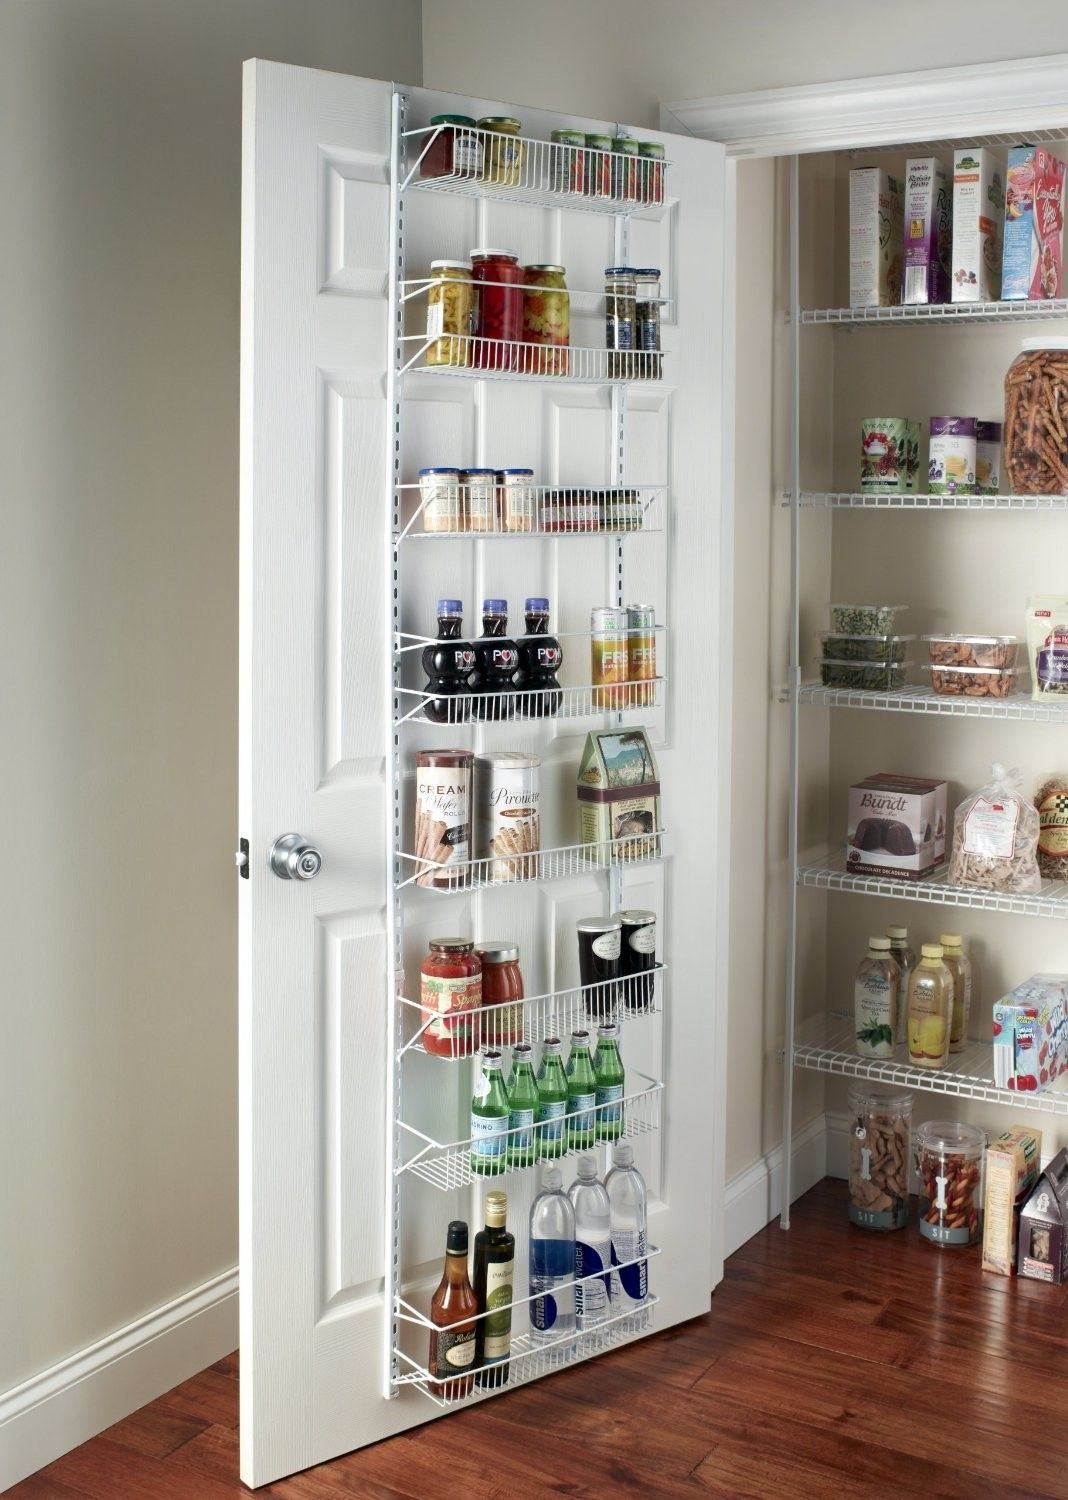 8 Tier Adjule Cabinet Door Organizer